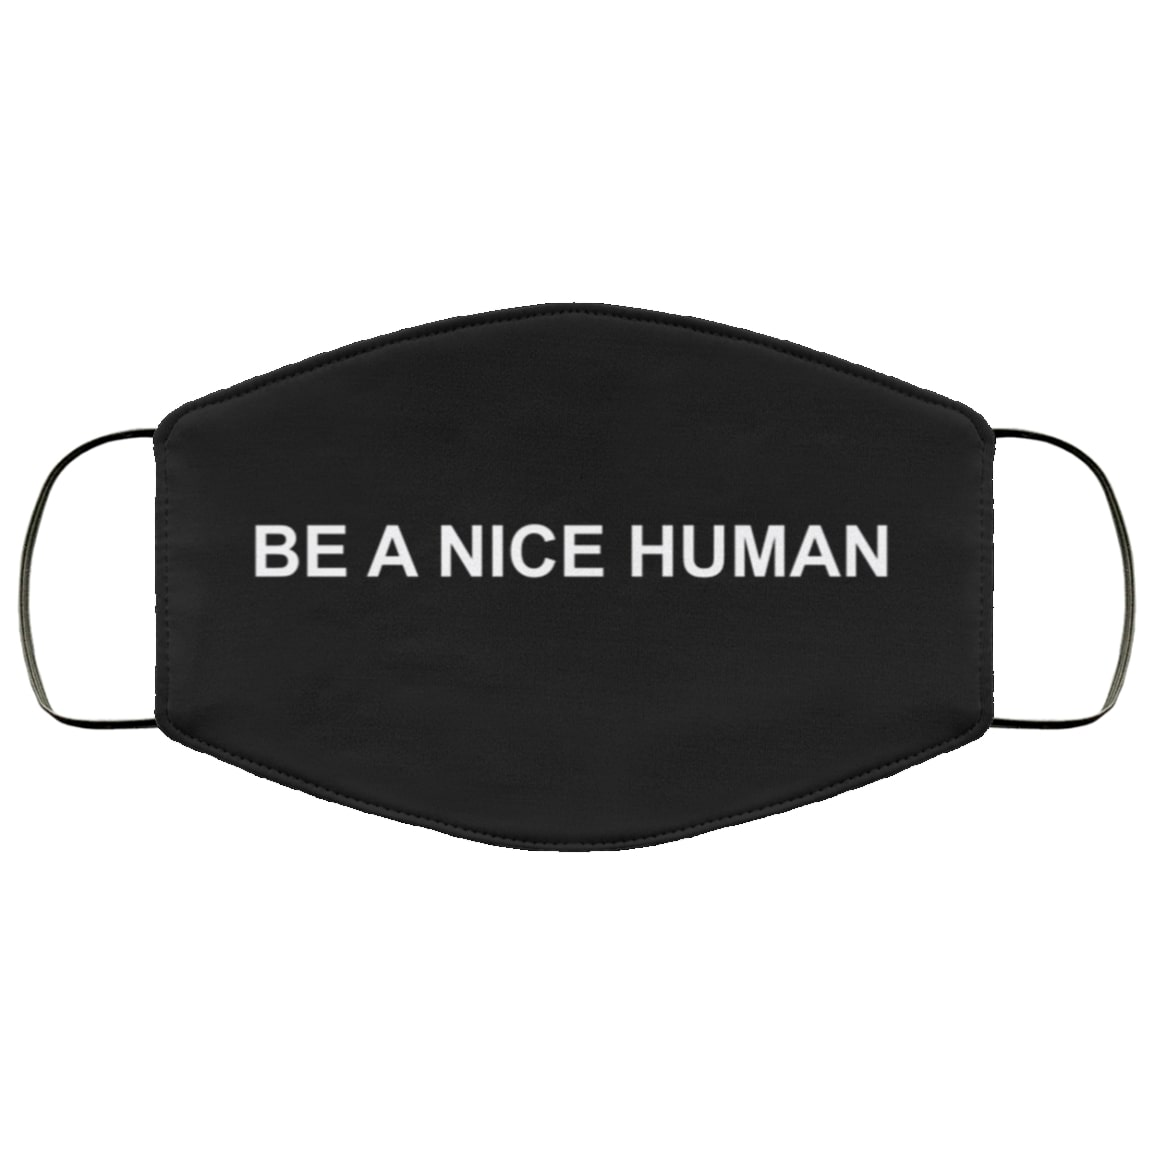 Be a nice human full over printed face mask 2